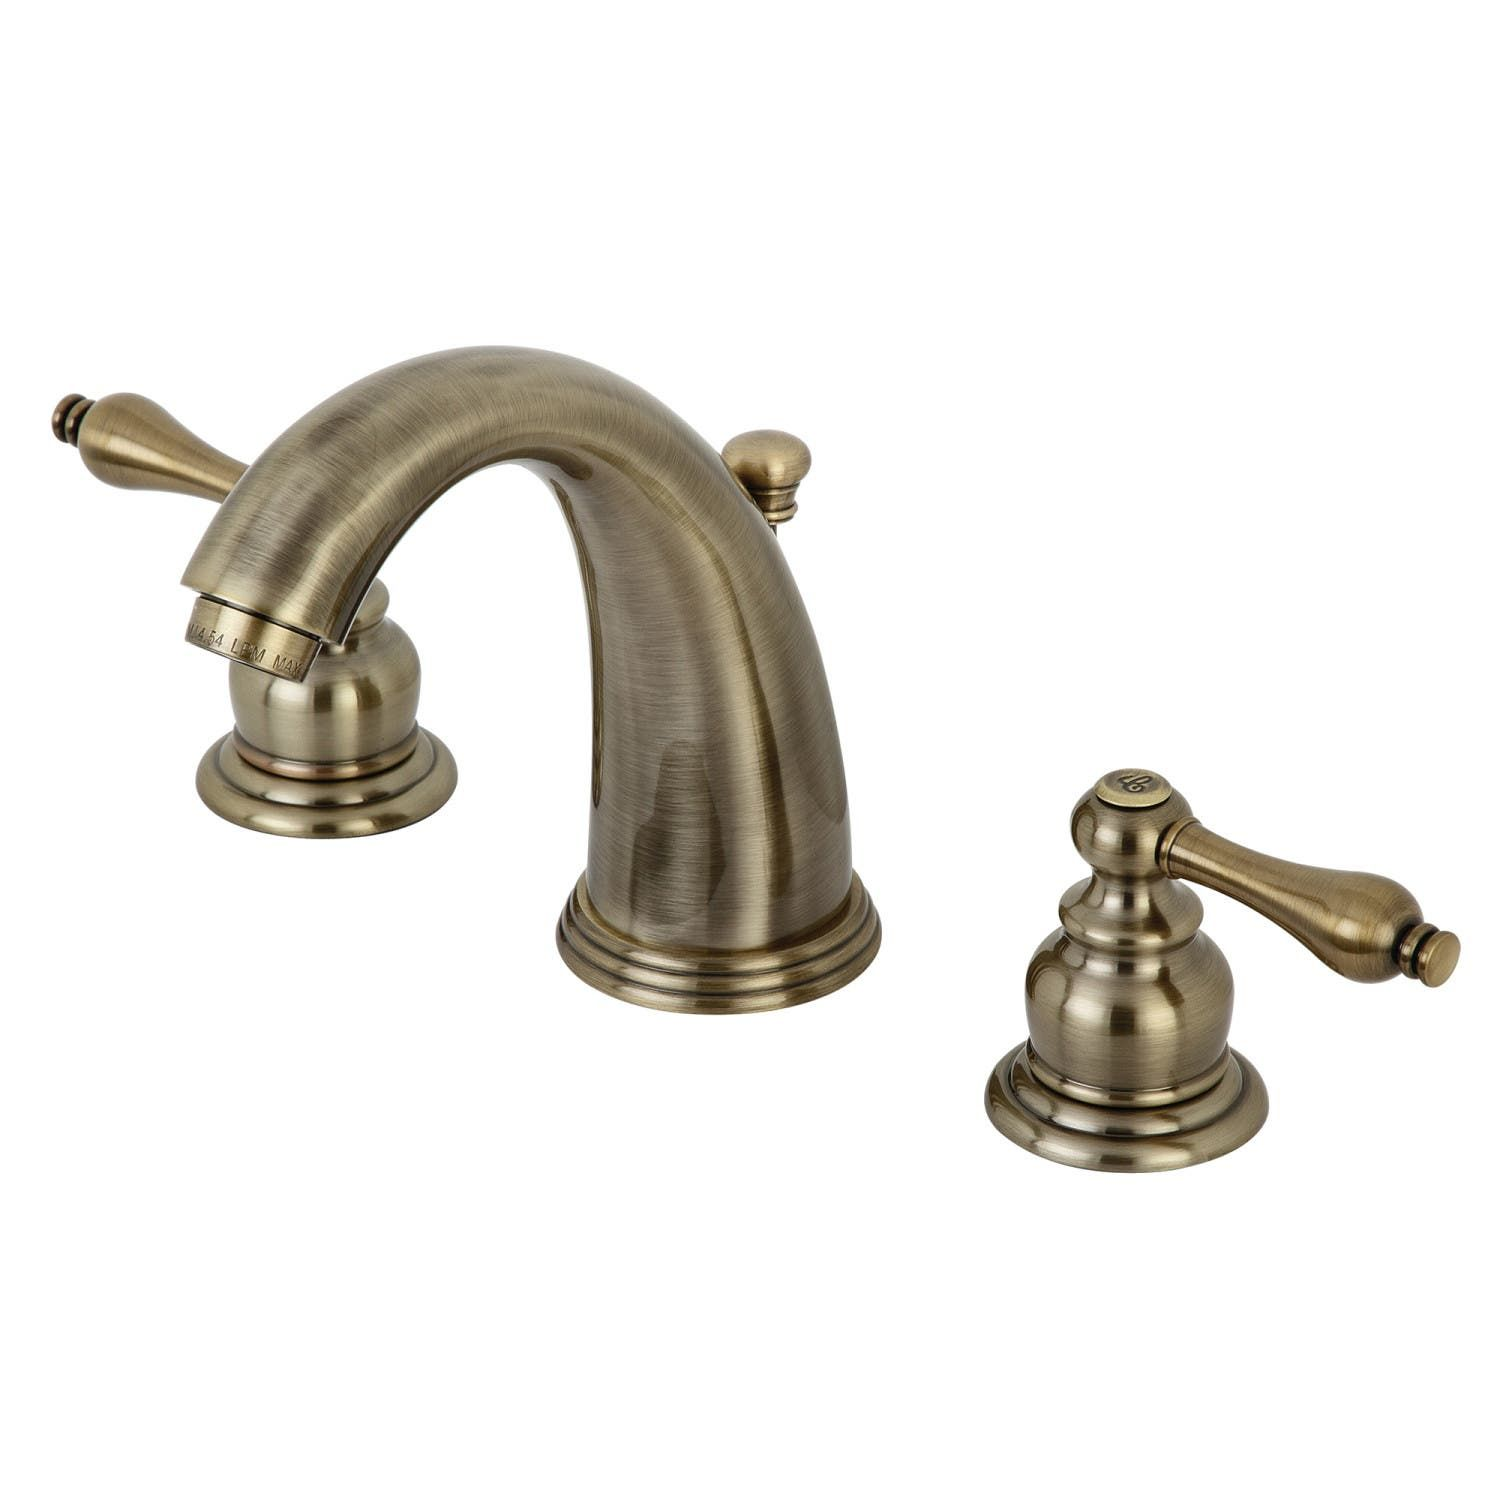 Pin On Topping Powder Room Faucet Sink